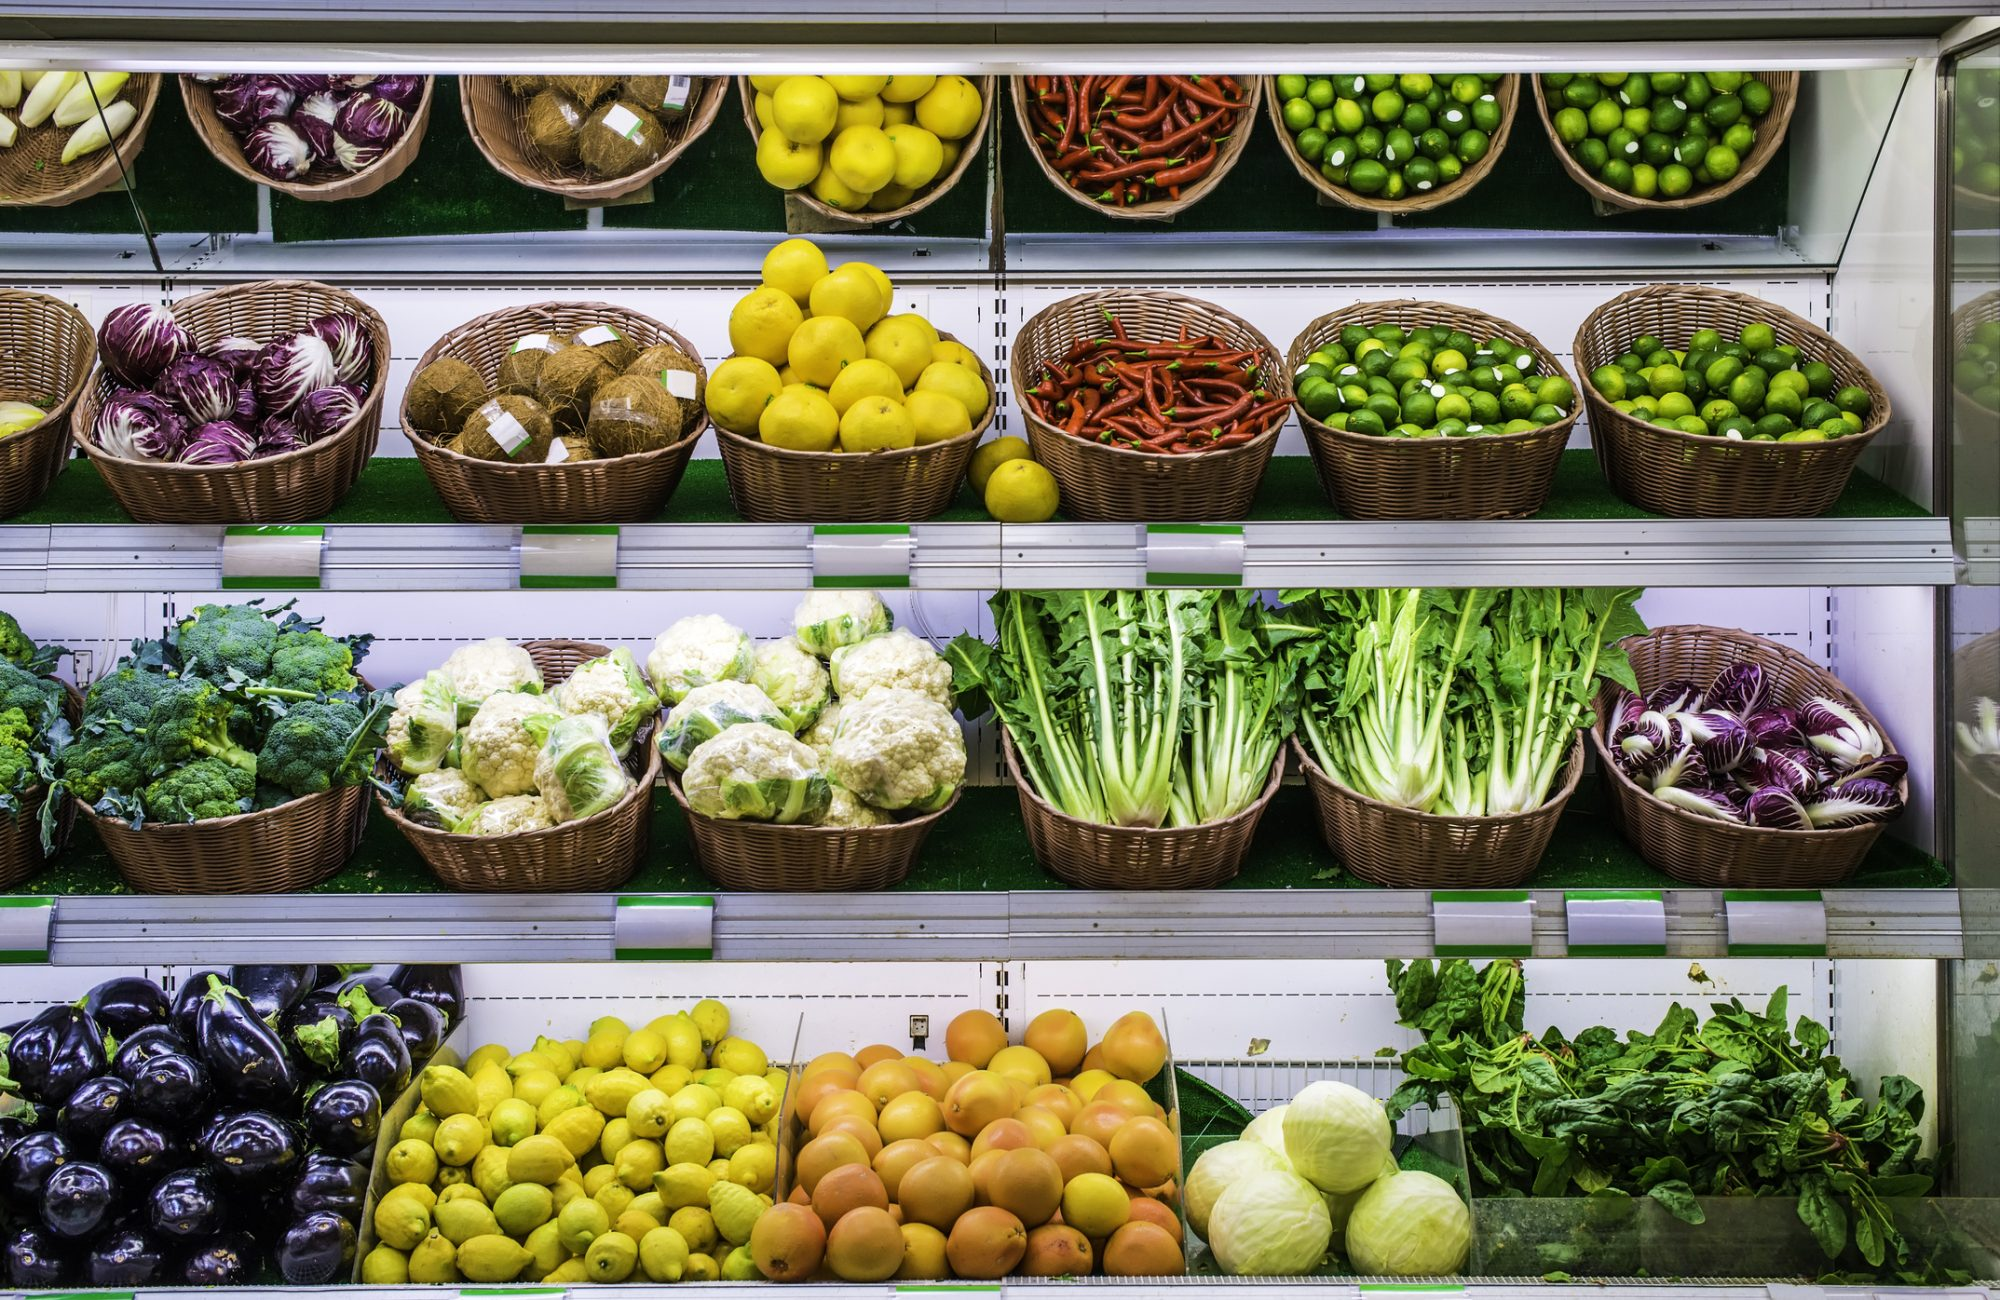 Fruits and vegetables on a supermarket shelf.